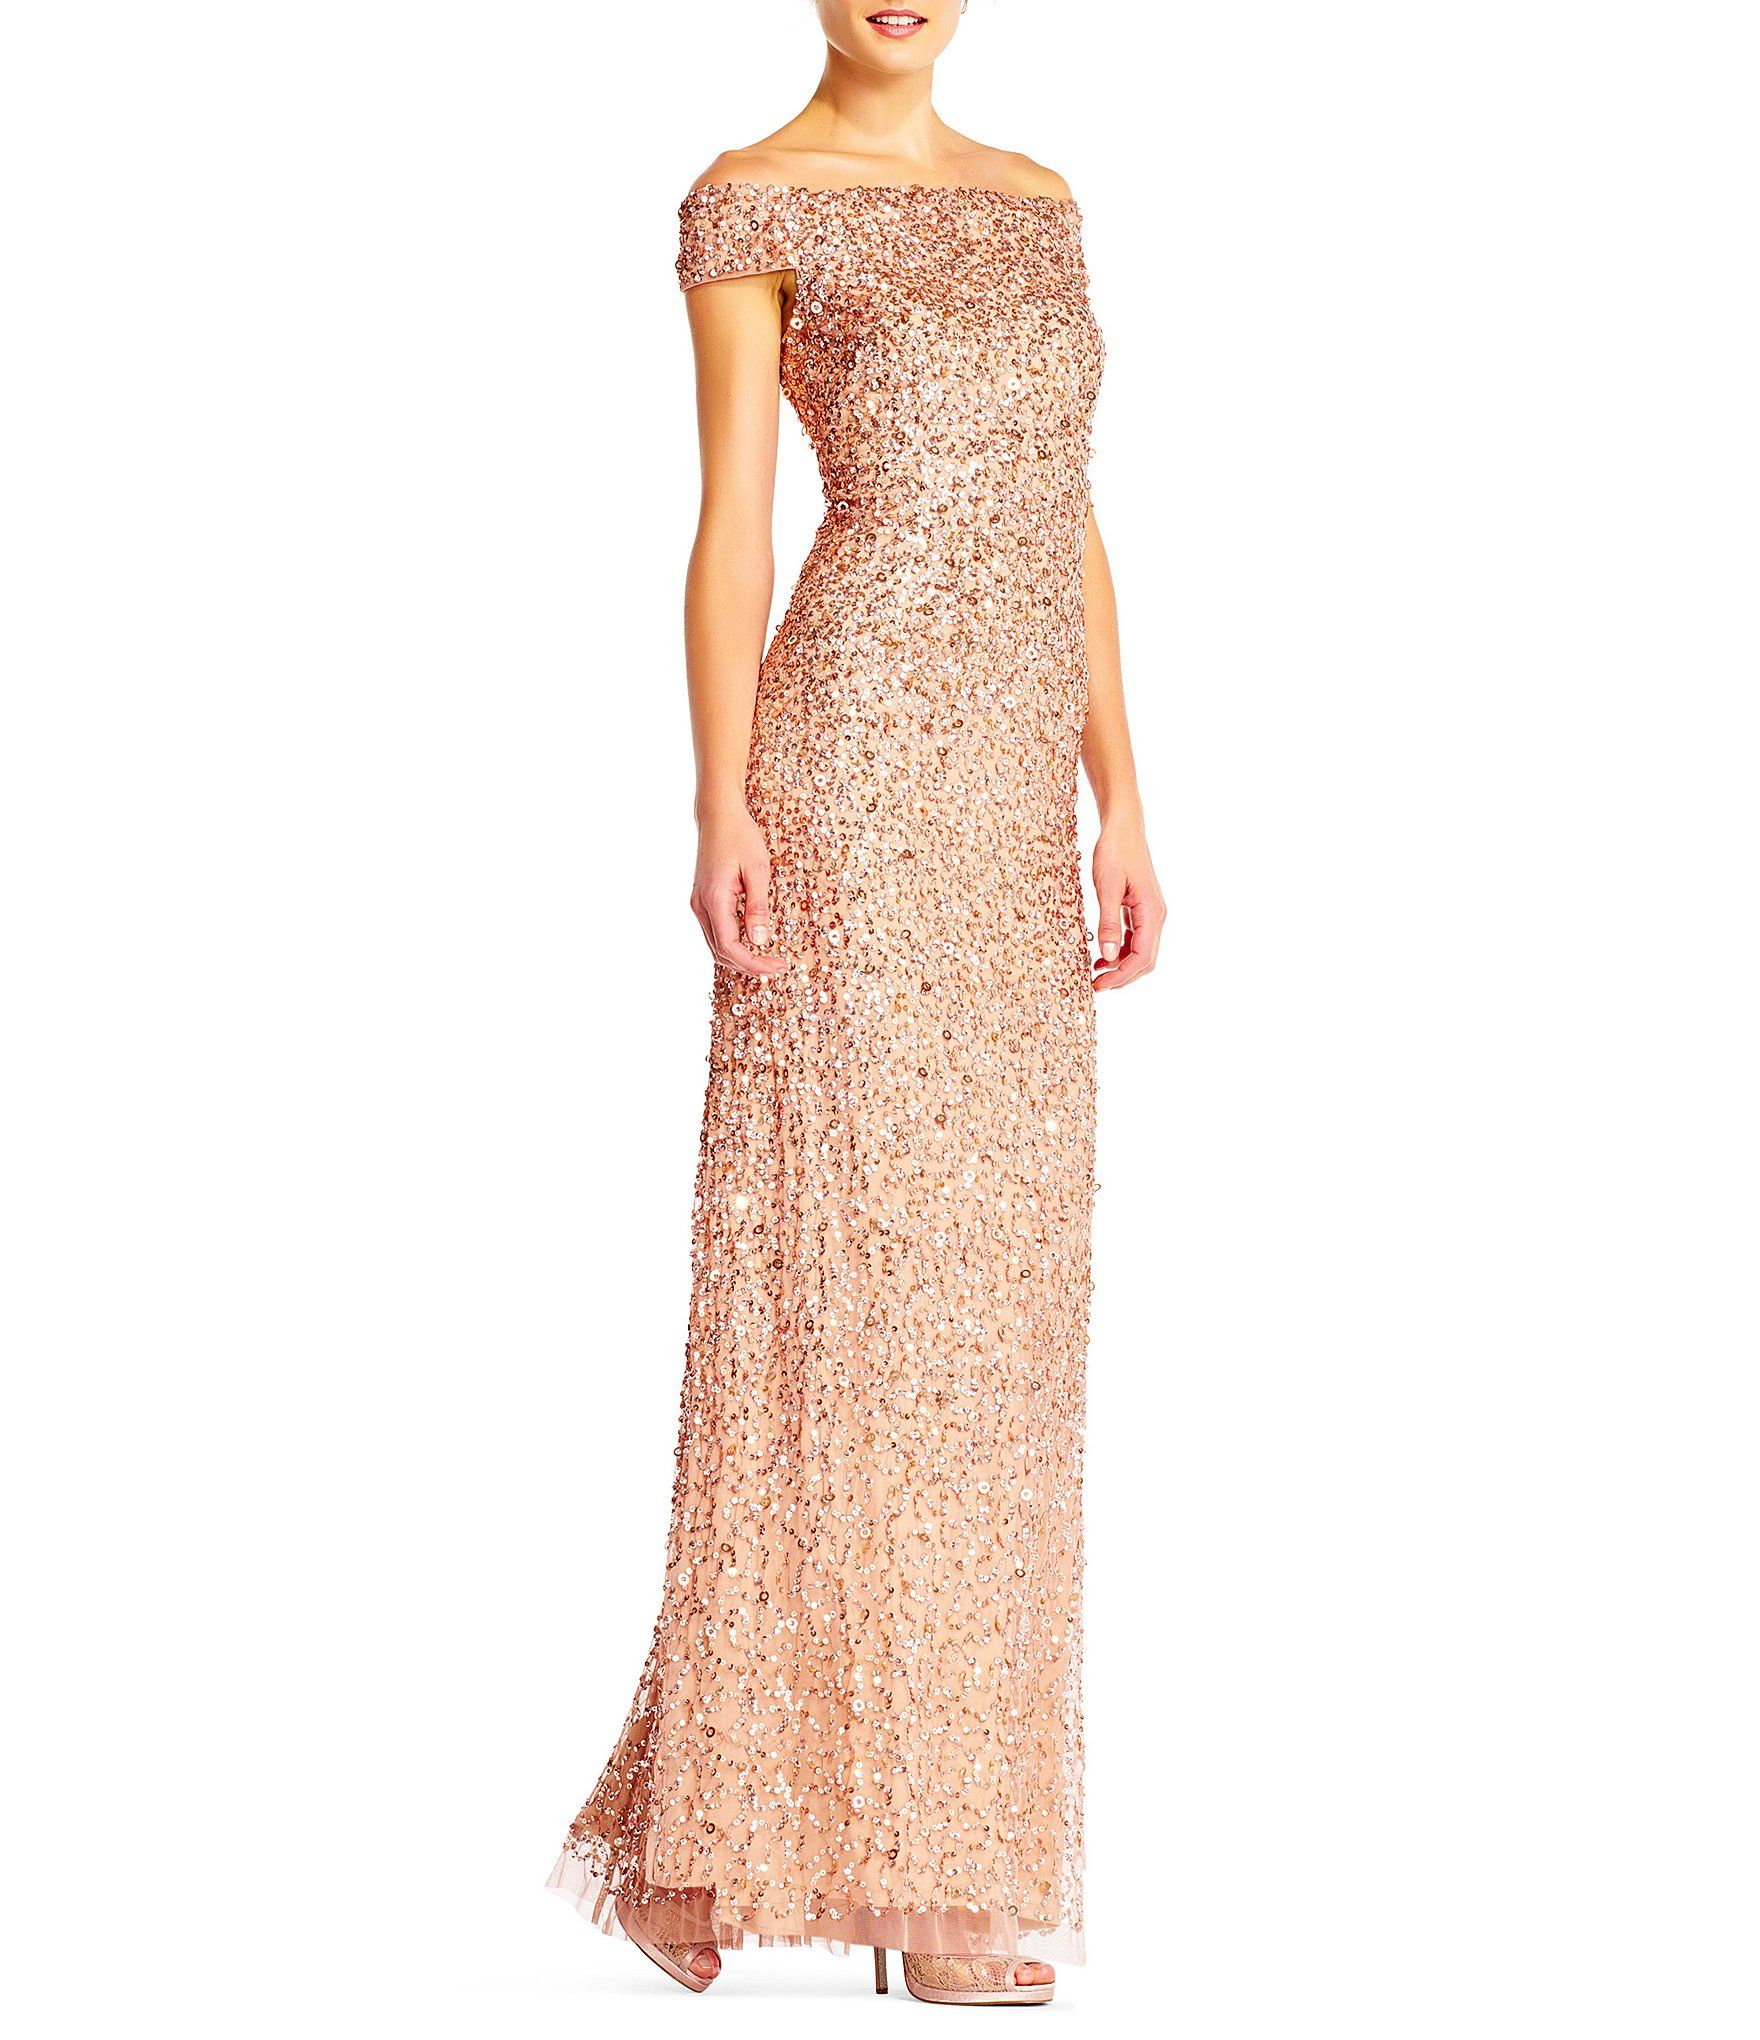 d2bfac7bcd8 Shop for Adrianna Papell Off-The-Shoulder Beaded Gown at Dillards.com. Visit  Dillards.com to find clothing